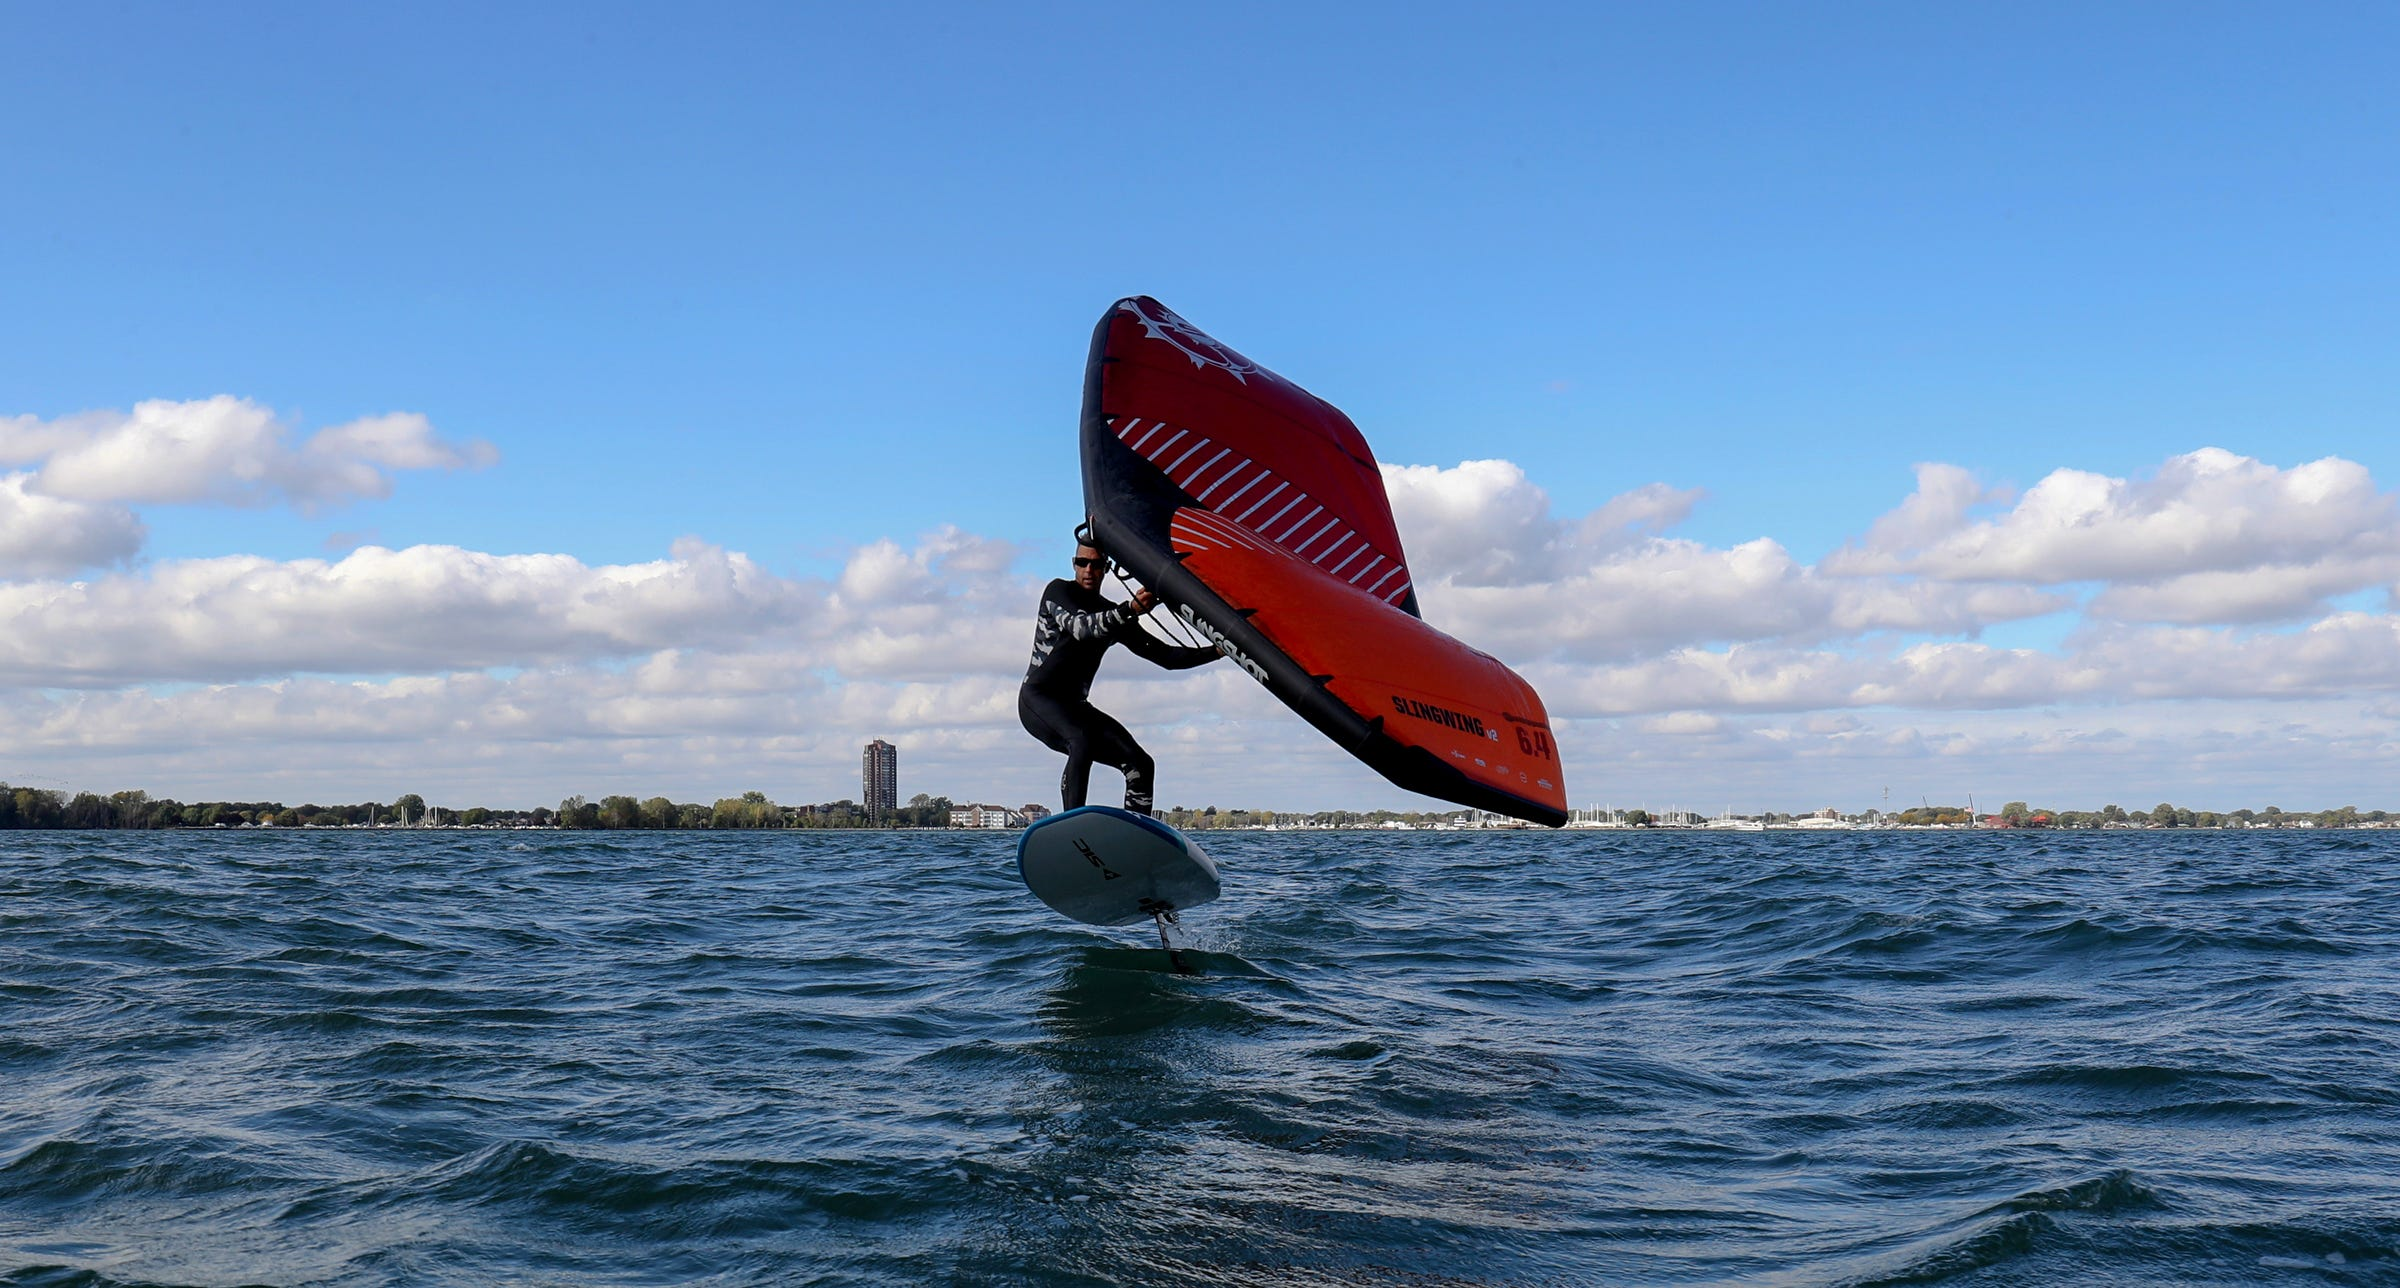 Welcome to the world of wing surfing. It's taking over Lake St. Clair.